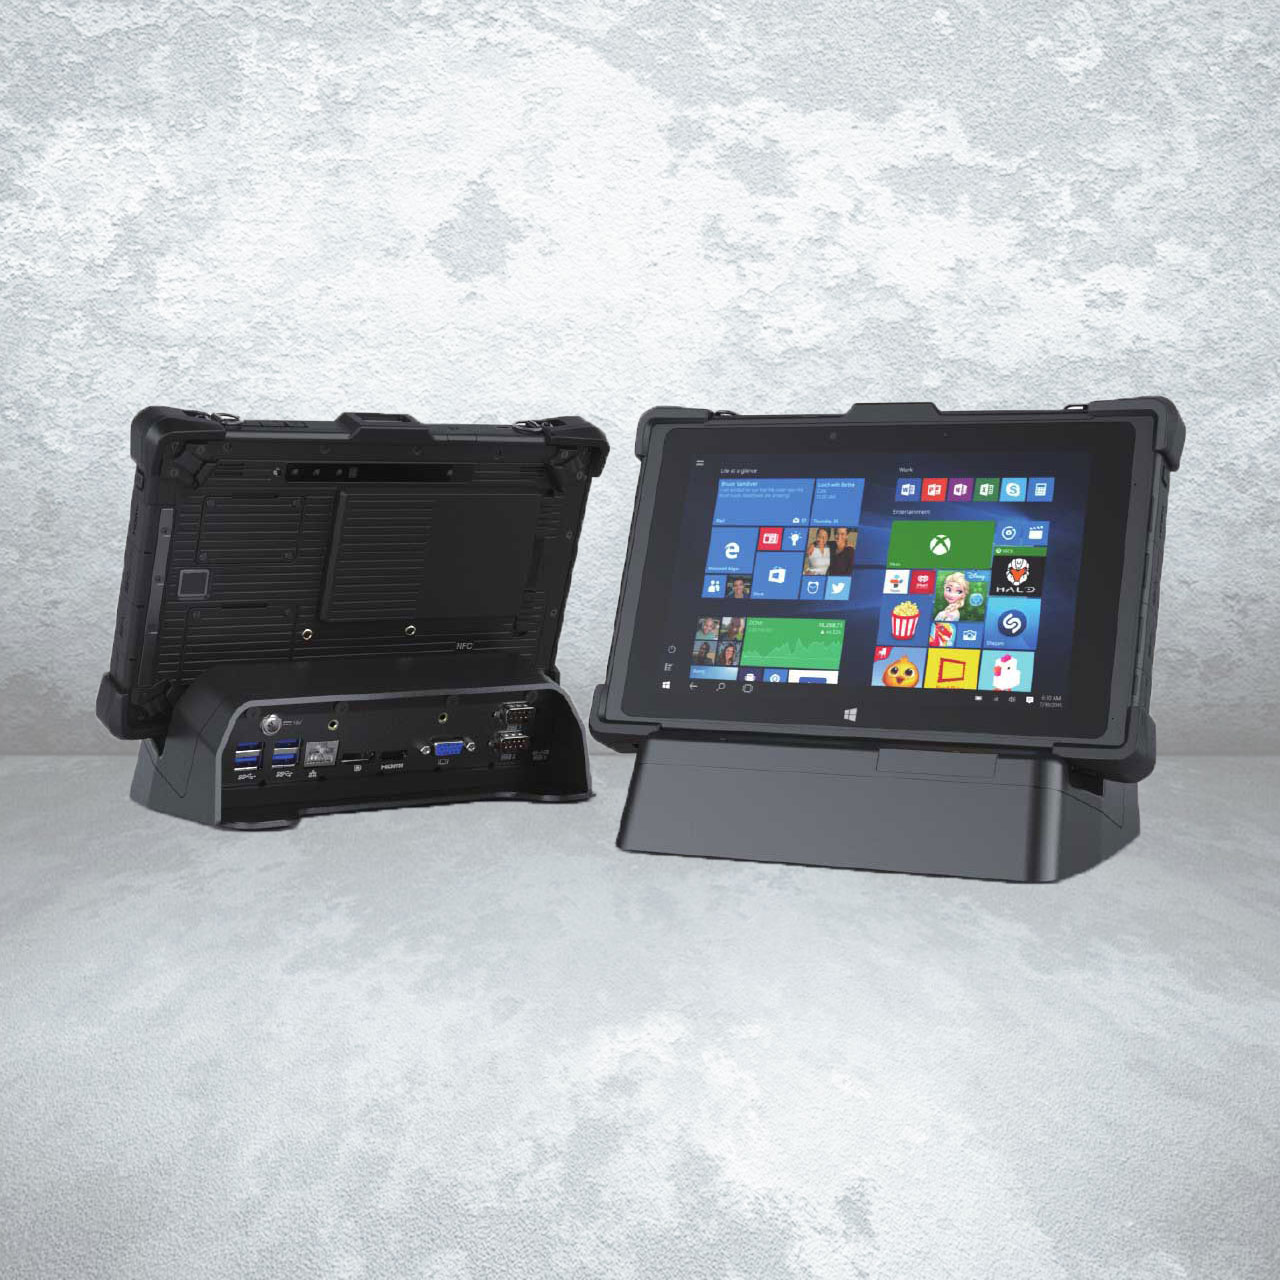 Tablet CW8